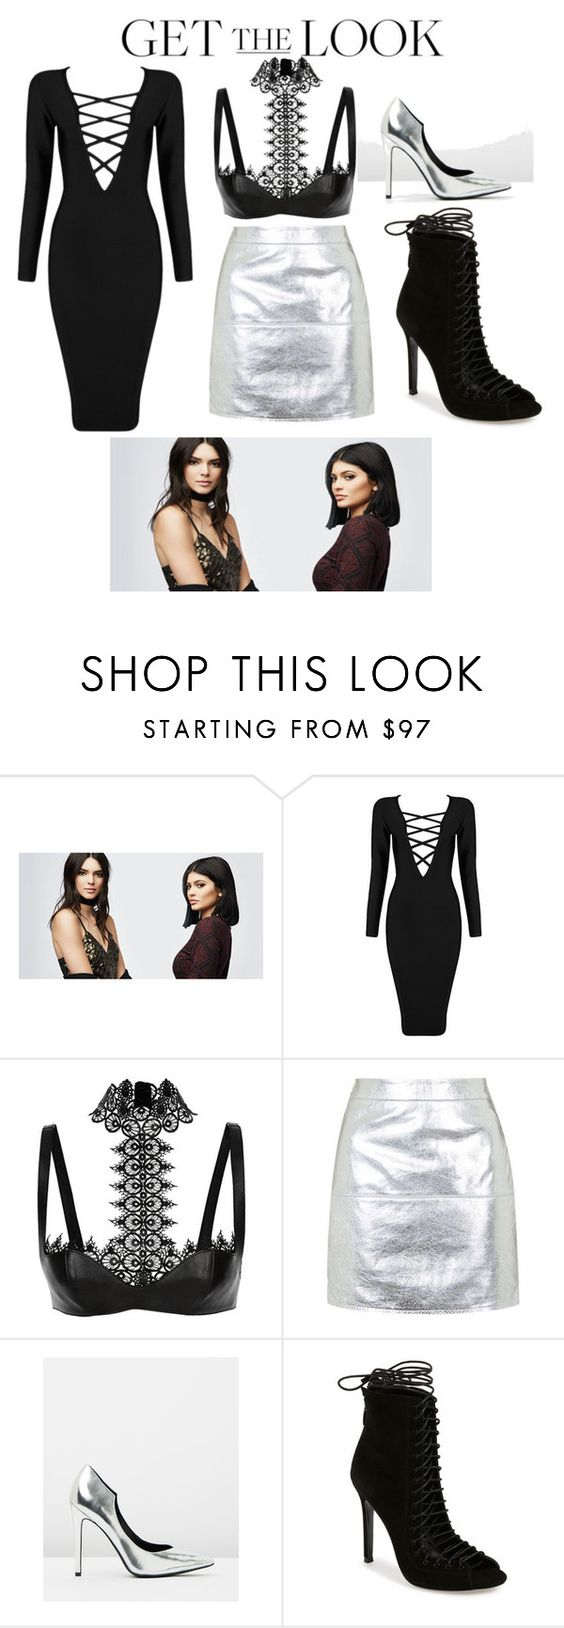 """jenner sisters inspired"" by anzabiee ❤ liked on Polyvore featuring PacSun, Posh Girl, Alexander McQueen, Topshop, Kendall + Kylie, GetTheLook and celebritysiblings"